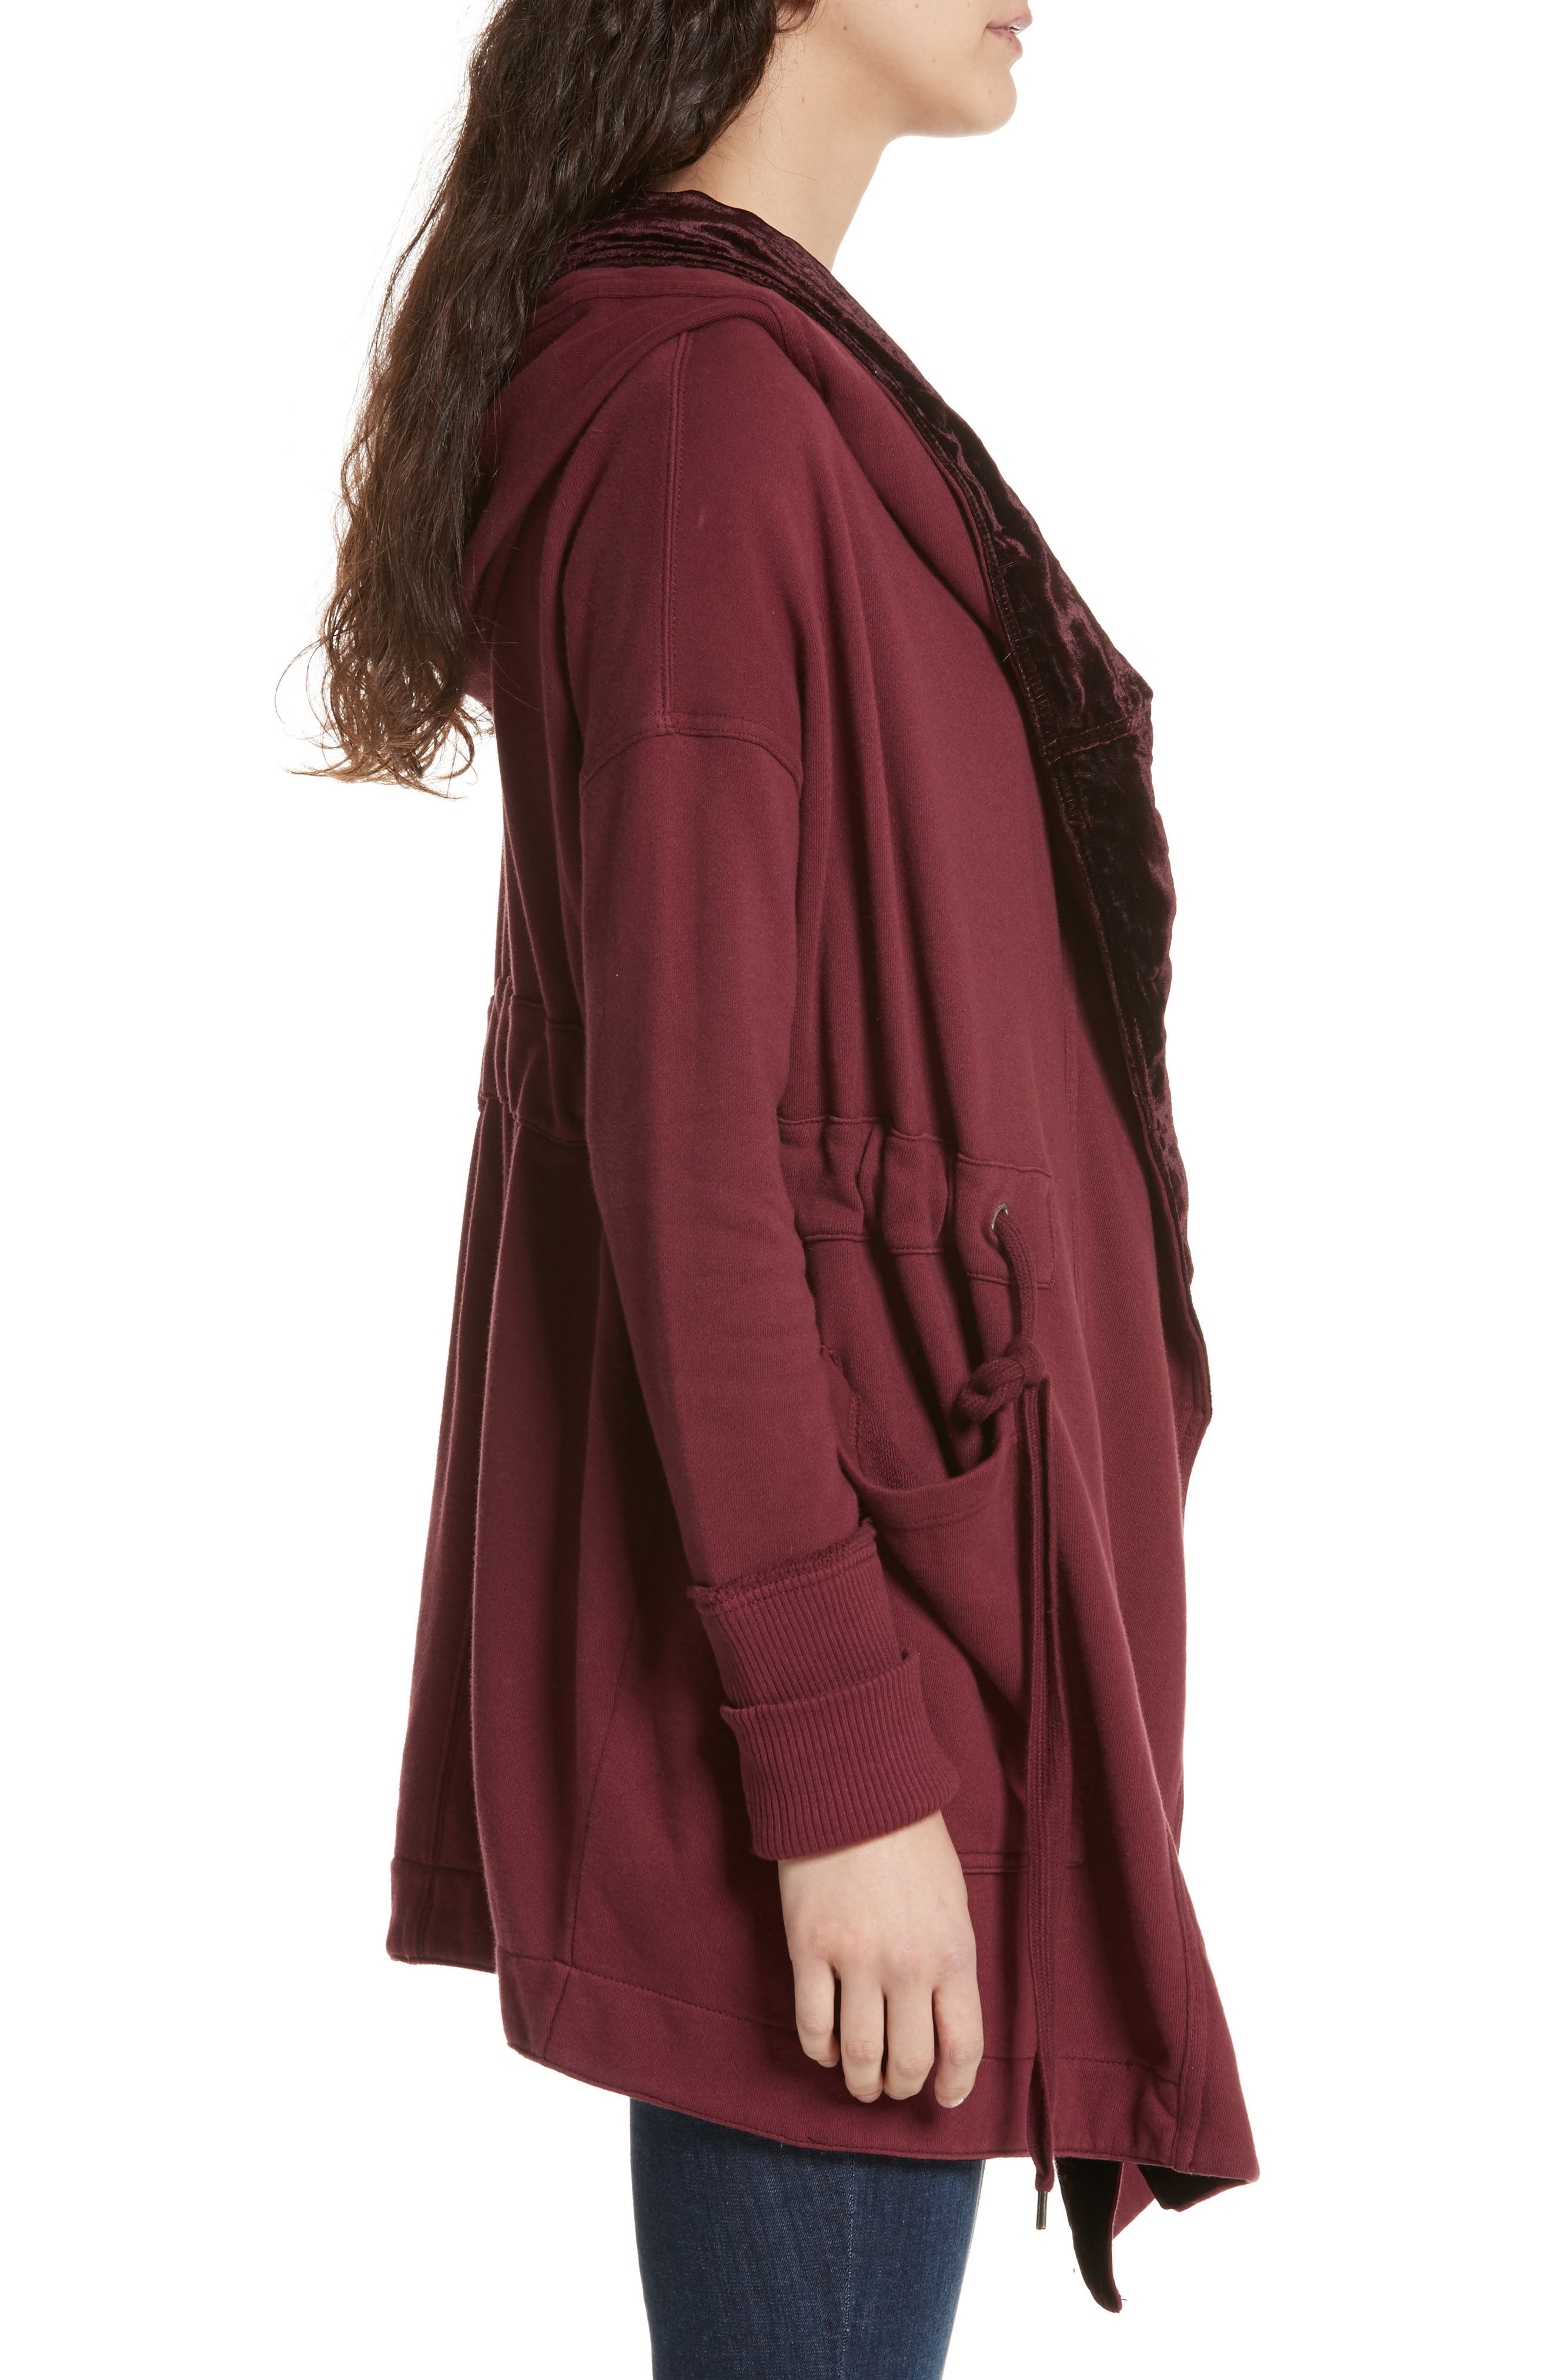 Westwood Cardigan,                             Alternate thumbnail 6, color,